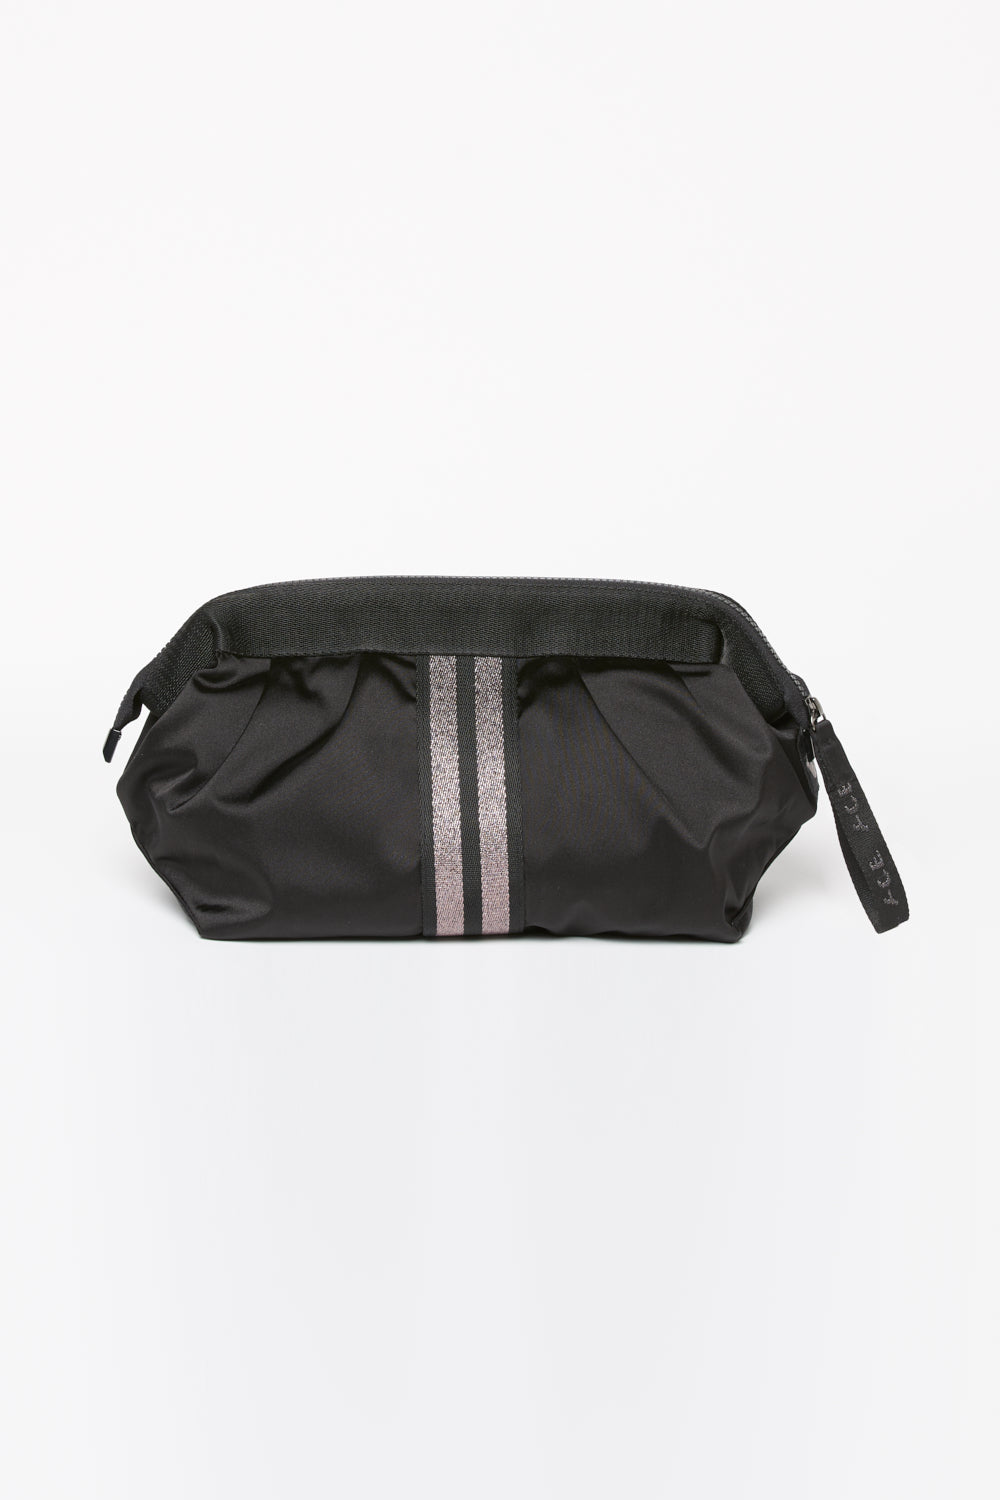 ACe Cosmetic Bag Black front